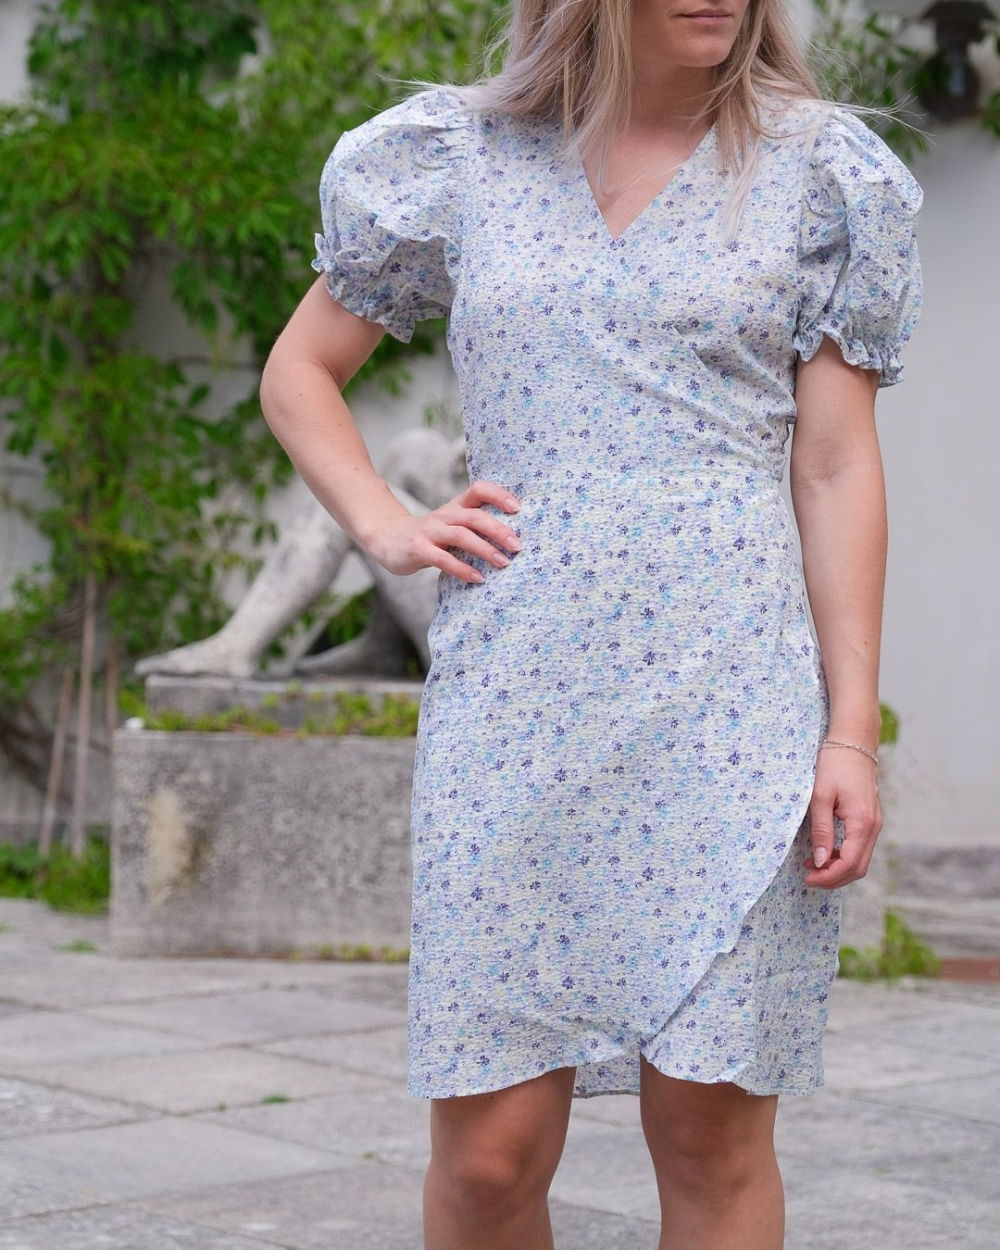 Neo Noir Spang Summer Floral Dress - Light Blue